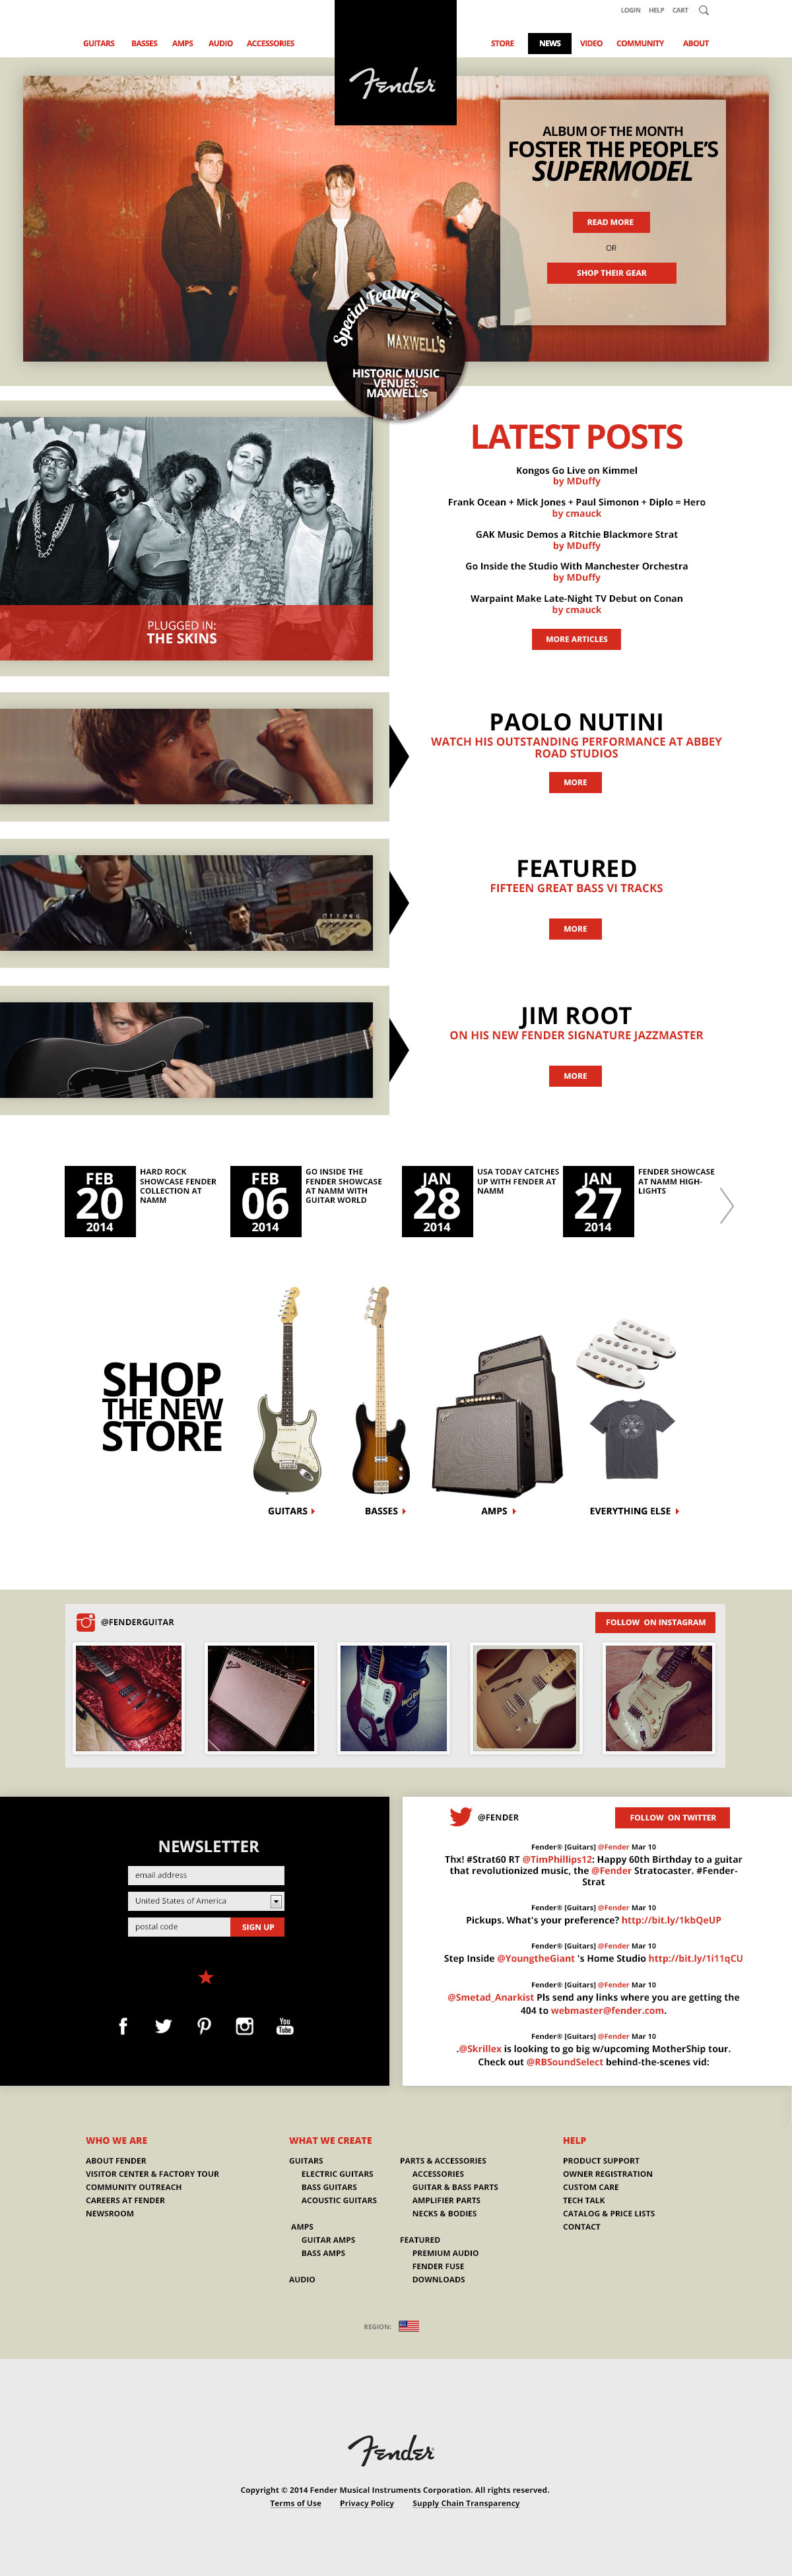 Fender_-NEWS_desktop1_v2